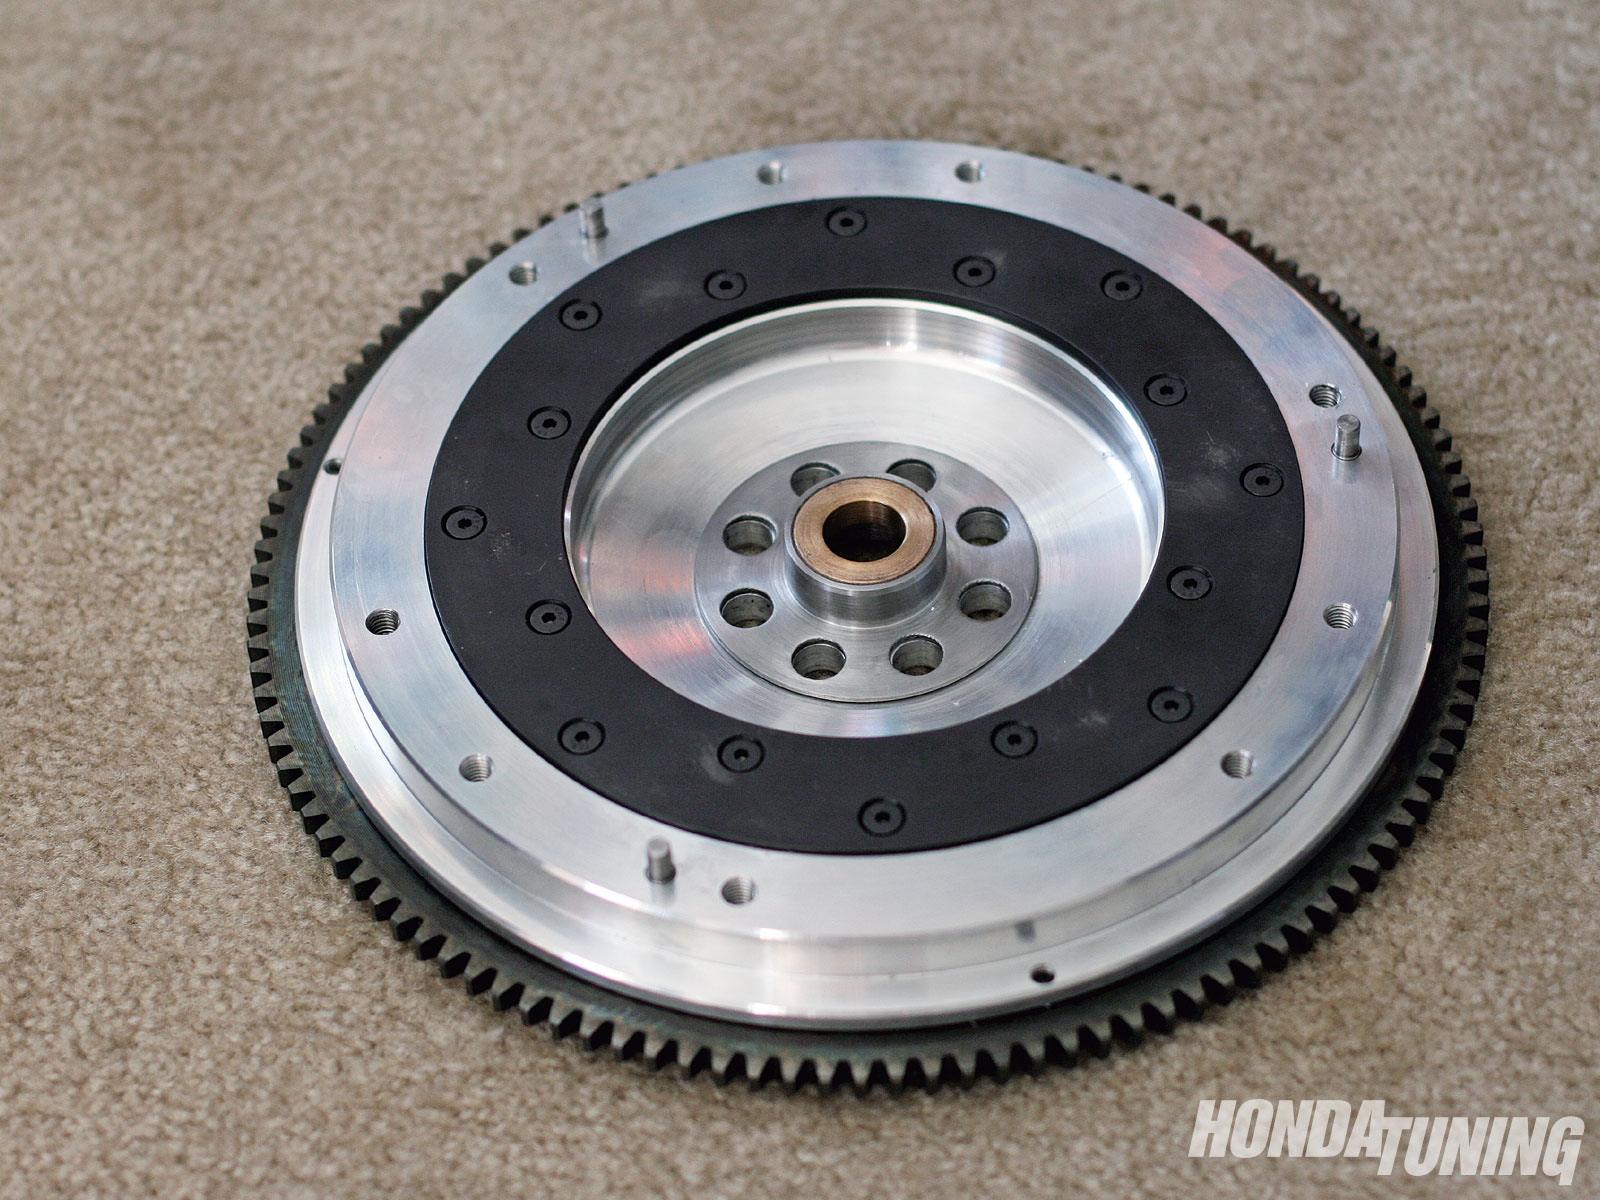 medium resolution of  motor mount htup 1010 06 o k24 swap into s2000 chassis clutch masters flywheel